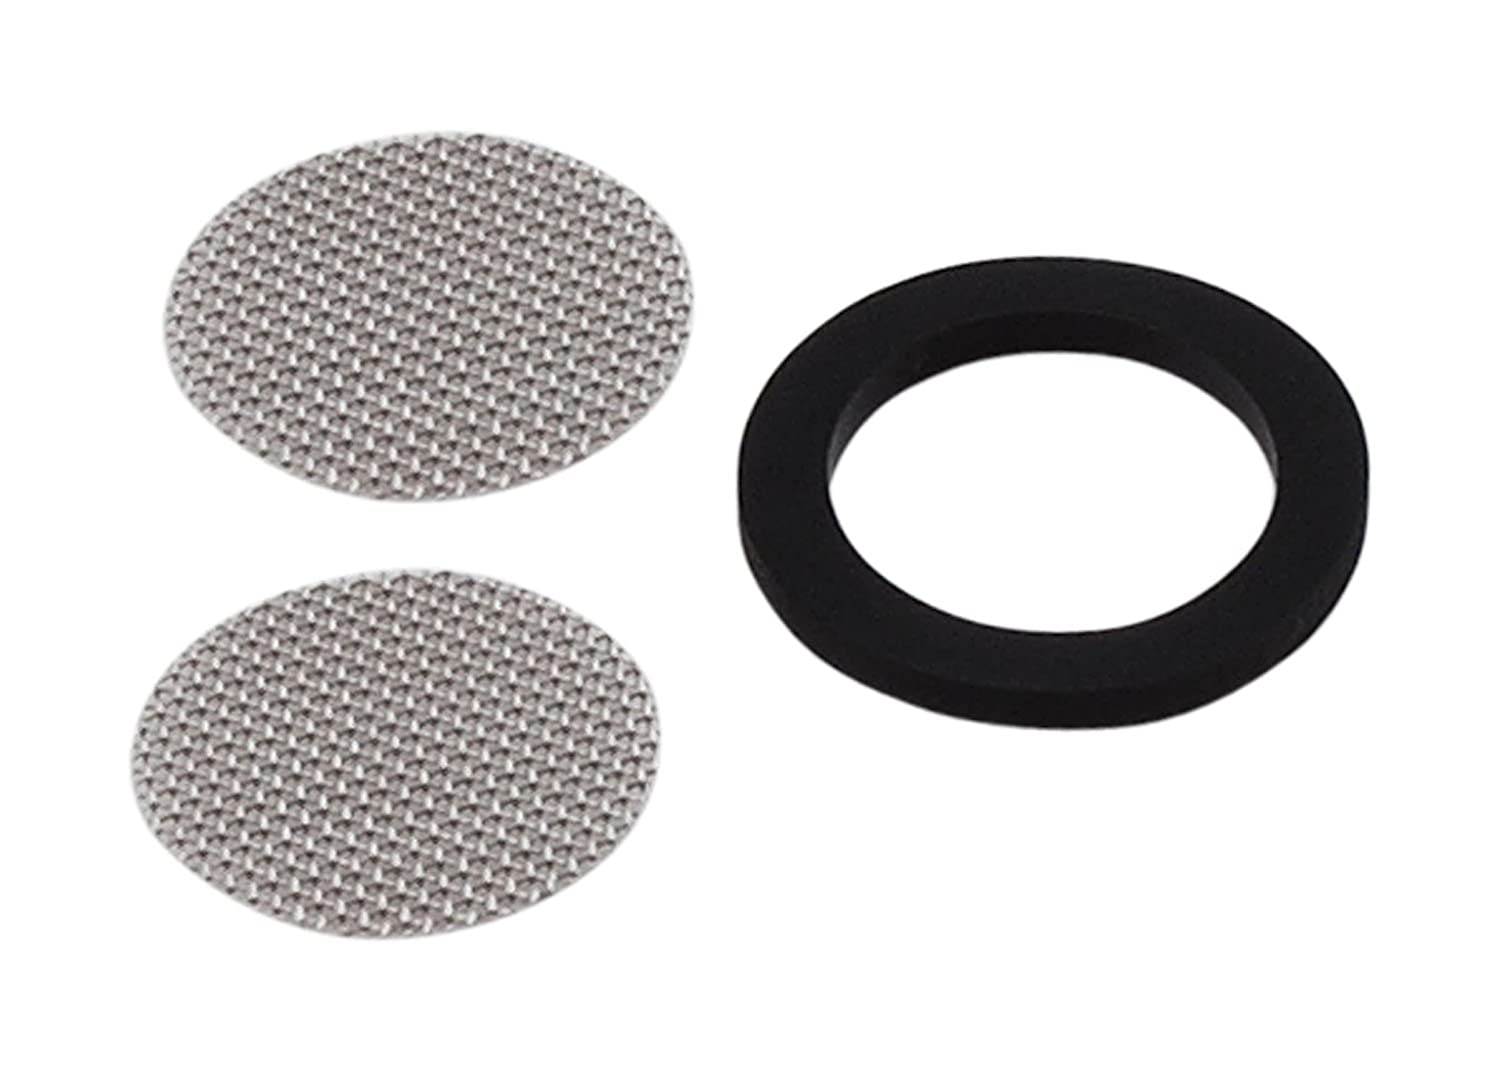 LDR 500 2199 Aerator Replacement Screen and Washer - Faucet Washers ...